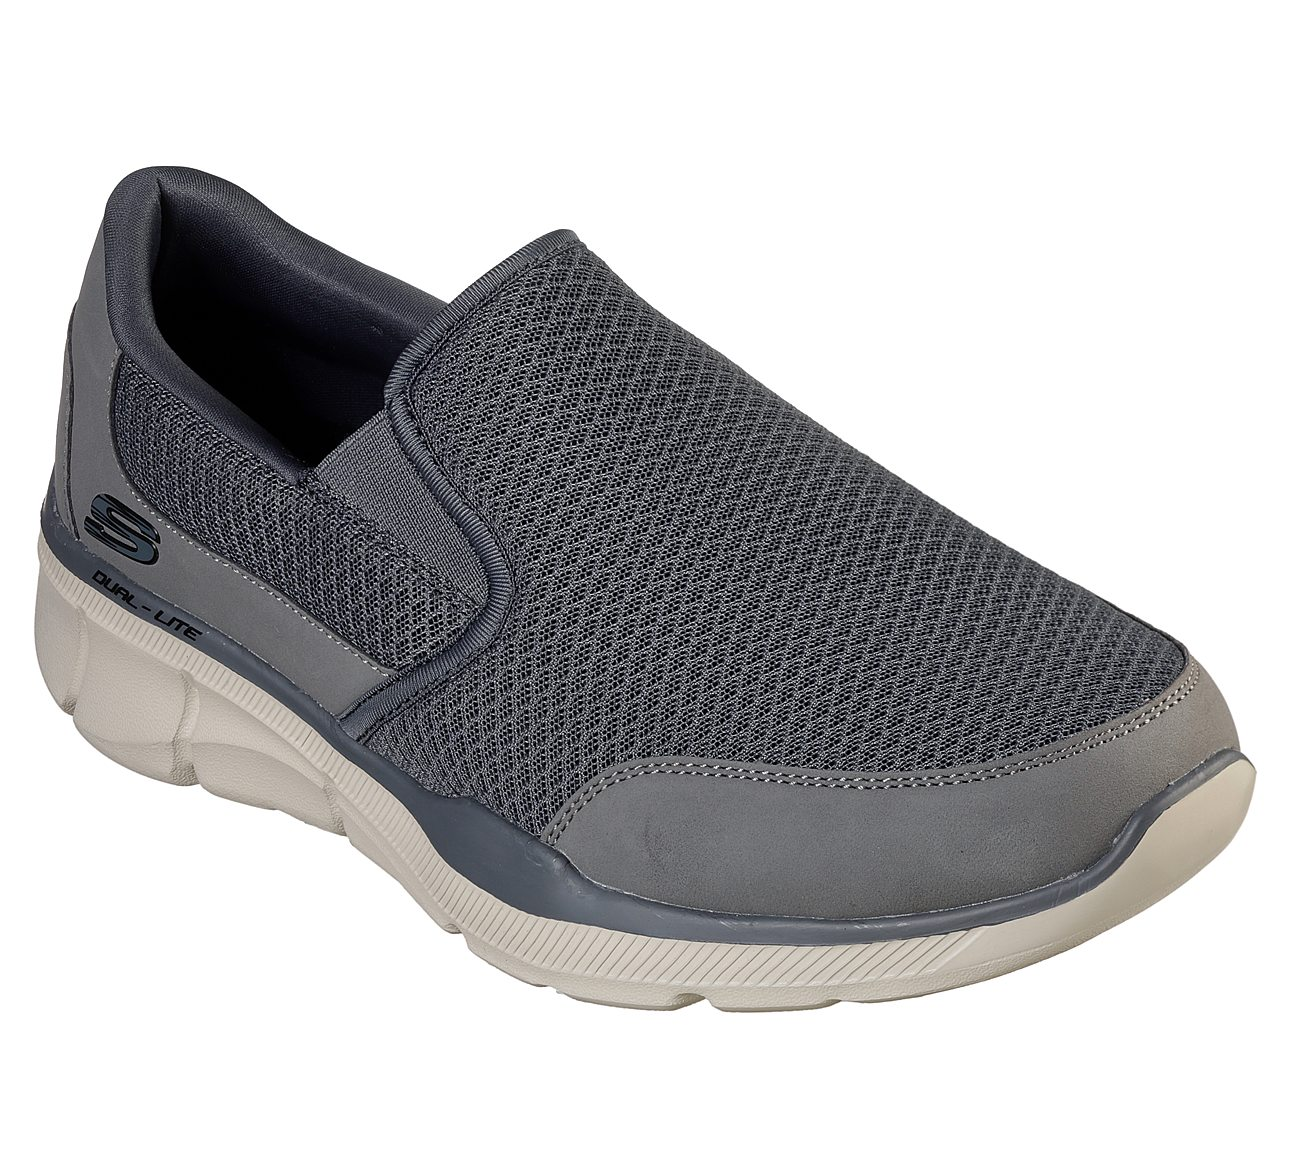 T Etna creencia  Buy SKECHERS Relaxed Fit: Equalizer 3.0 - Bluegate Relaxed Fit Shoes